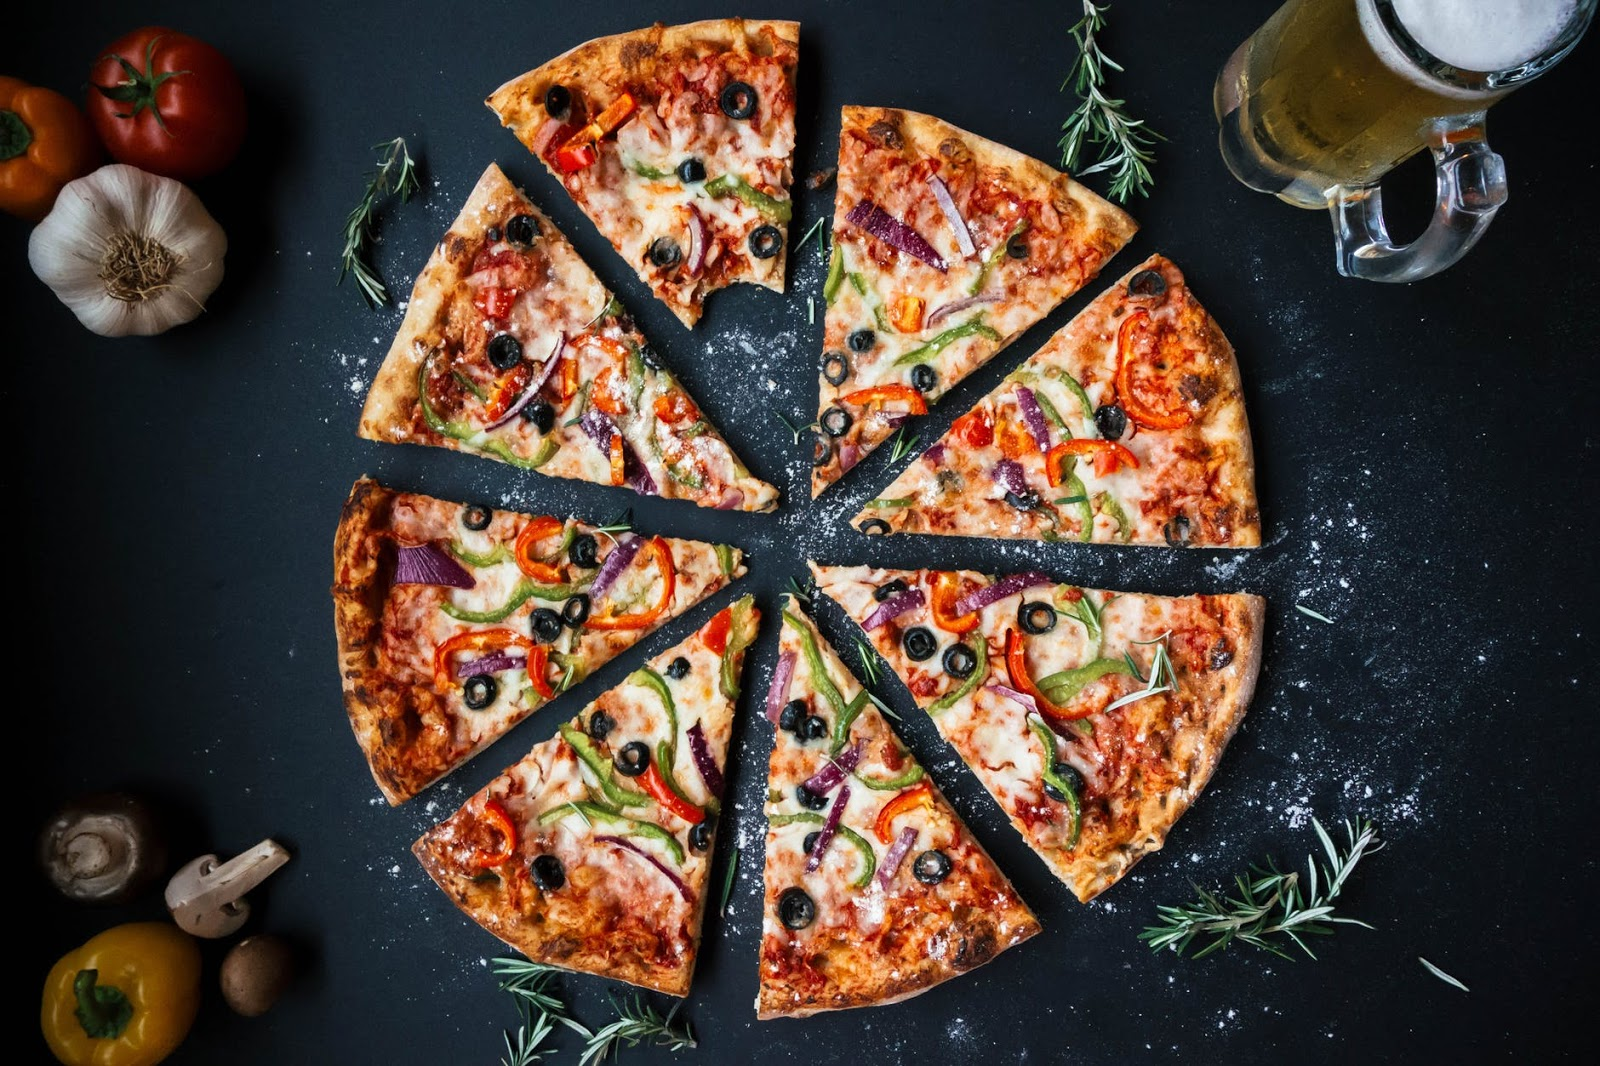 overhead view of a pizza cut into slices